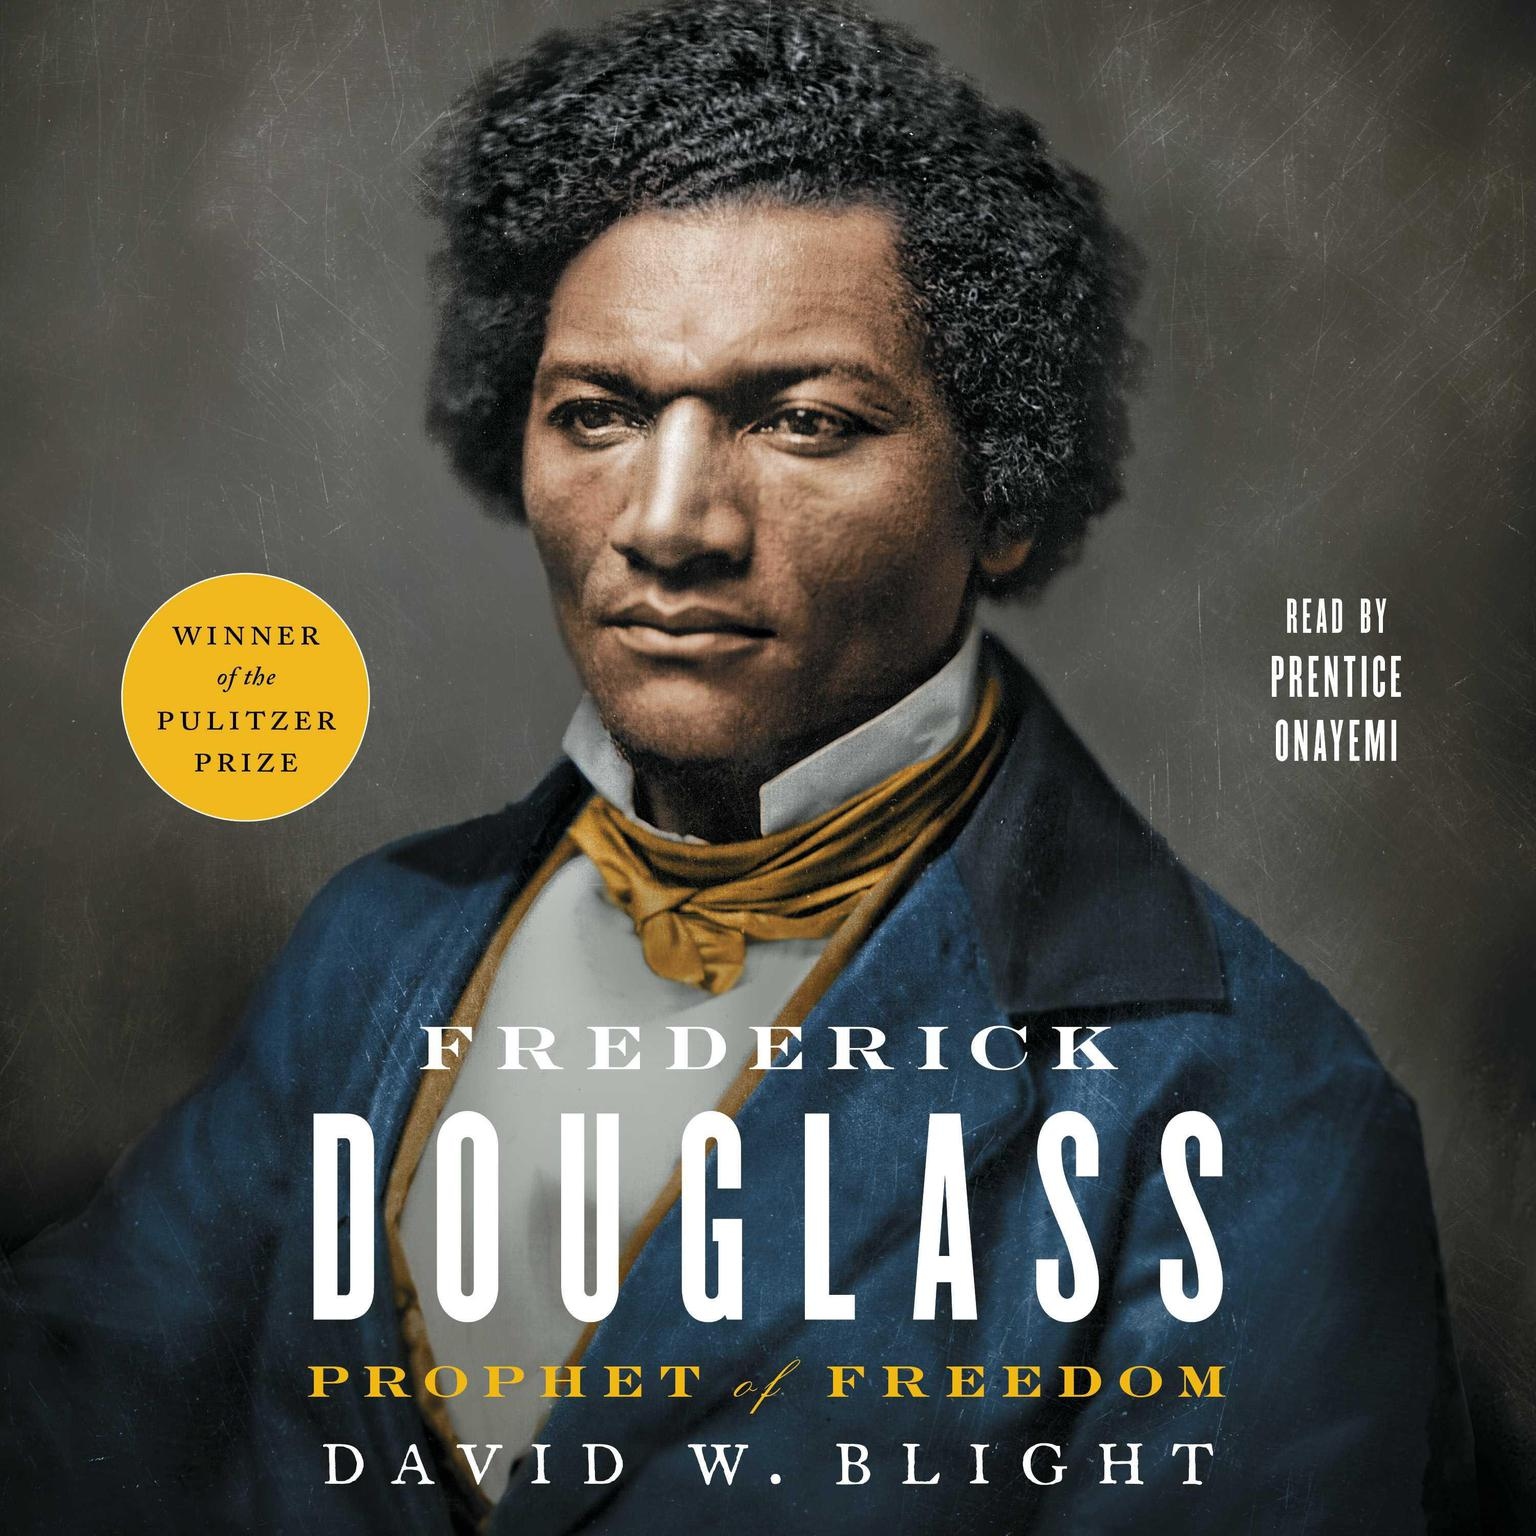 Printable Frederick Douglass: Prophet of Freedom Audiobook Cover Art